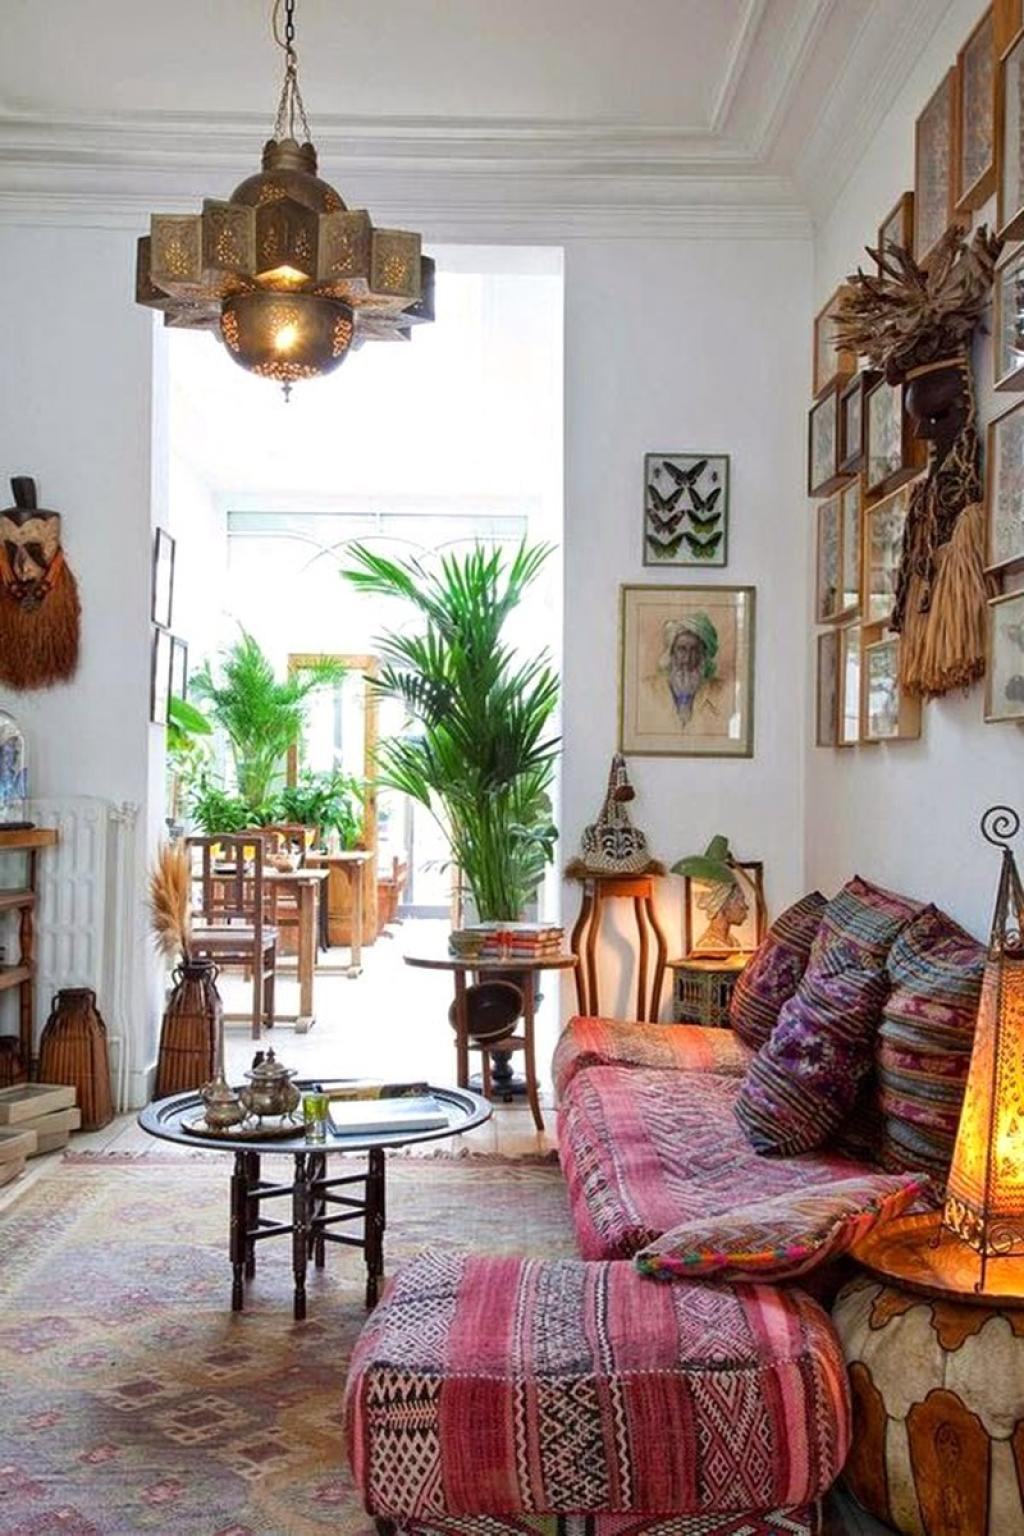 small-living-room-with-bohemian-interior-design-ideas